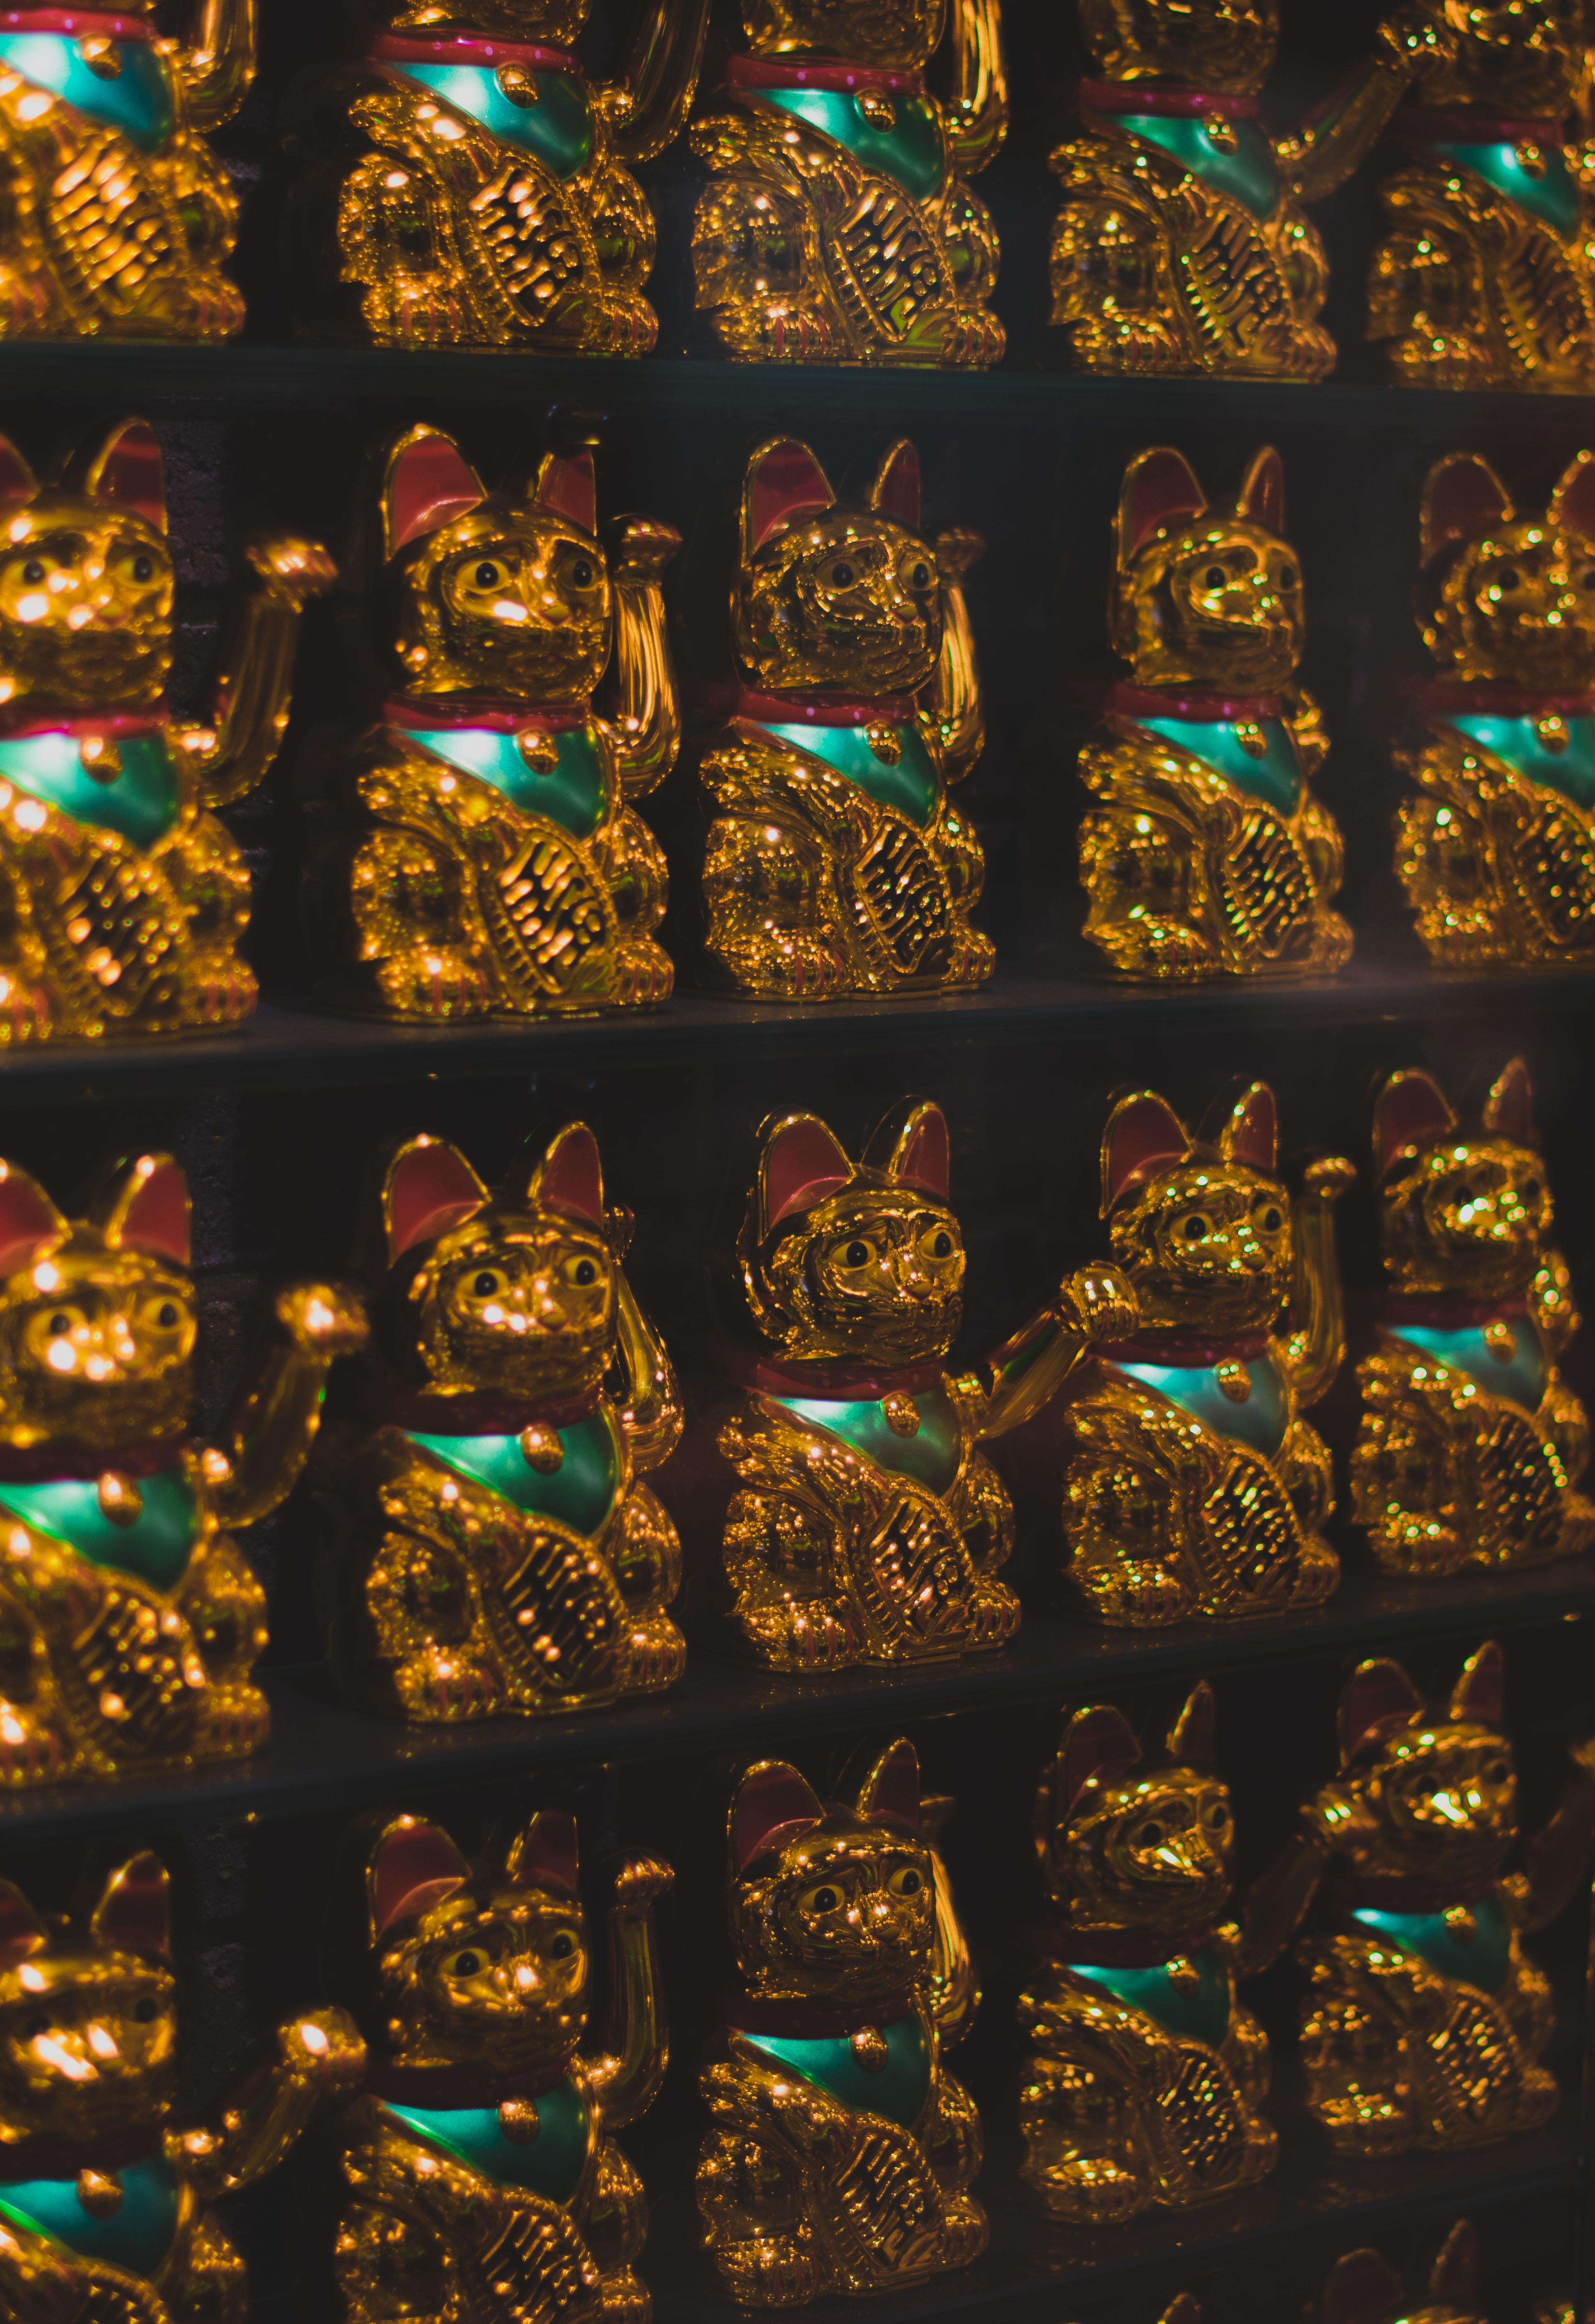 display of gold lucky cat figurines